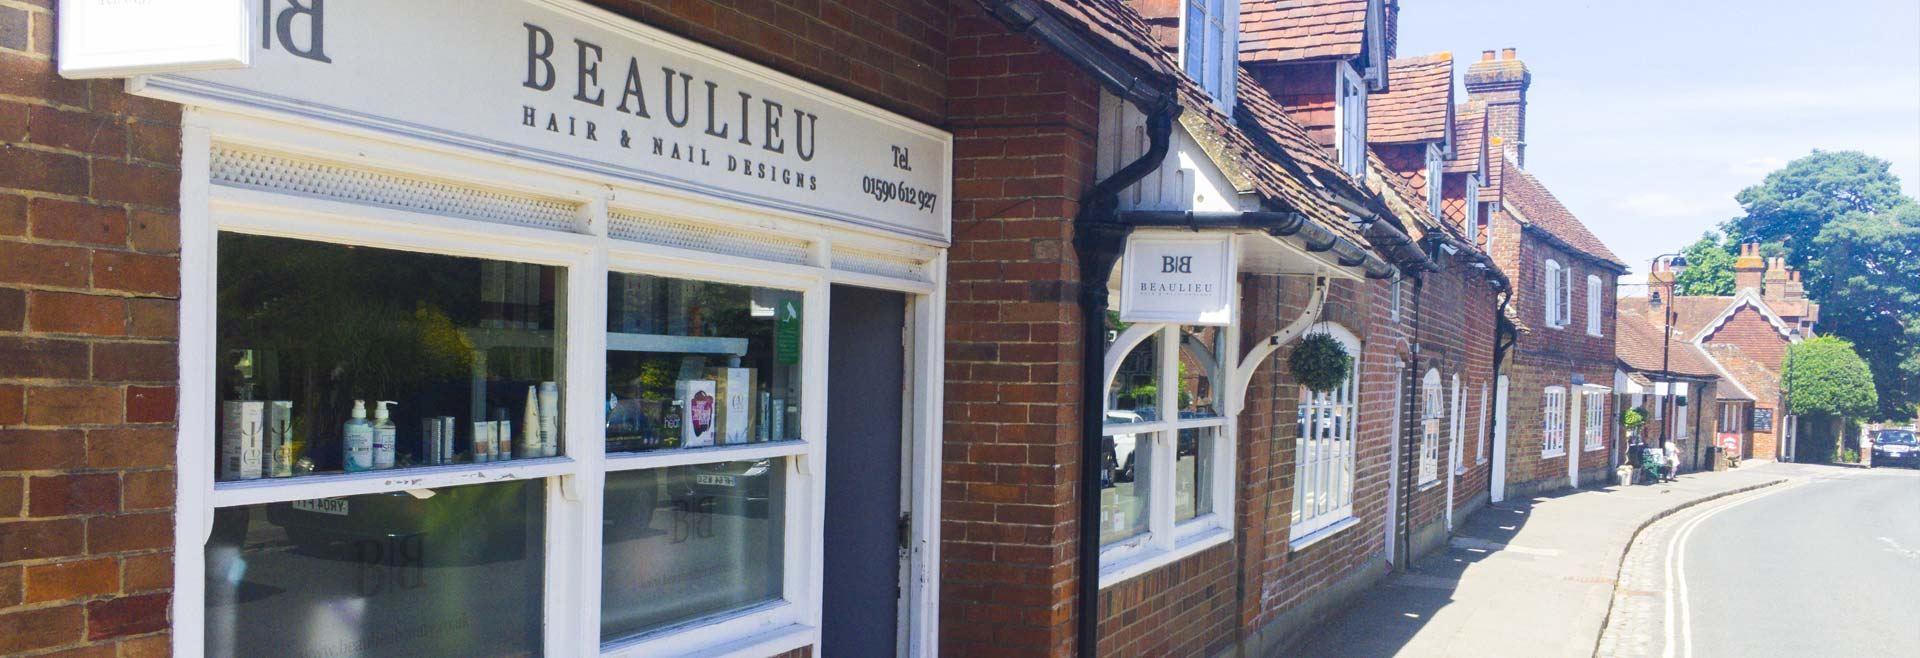 Beaulieu hair and nails